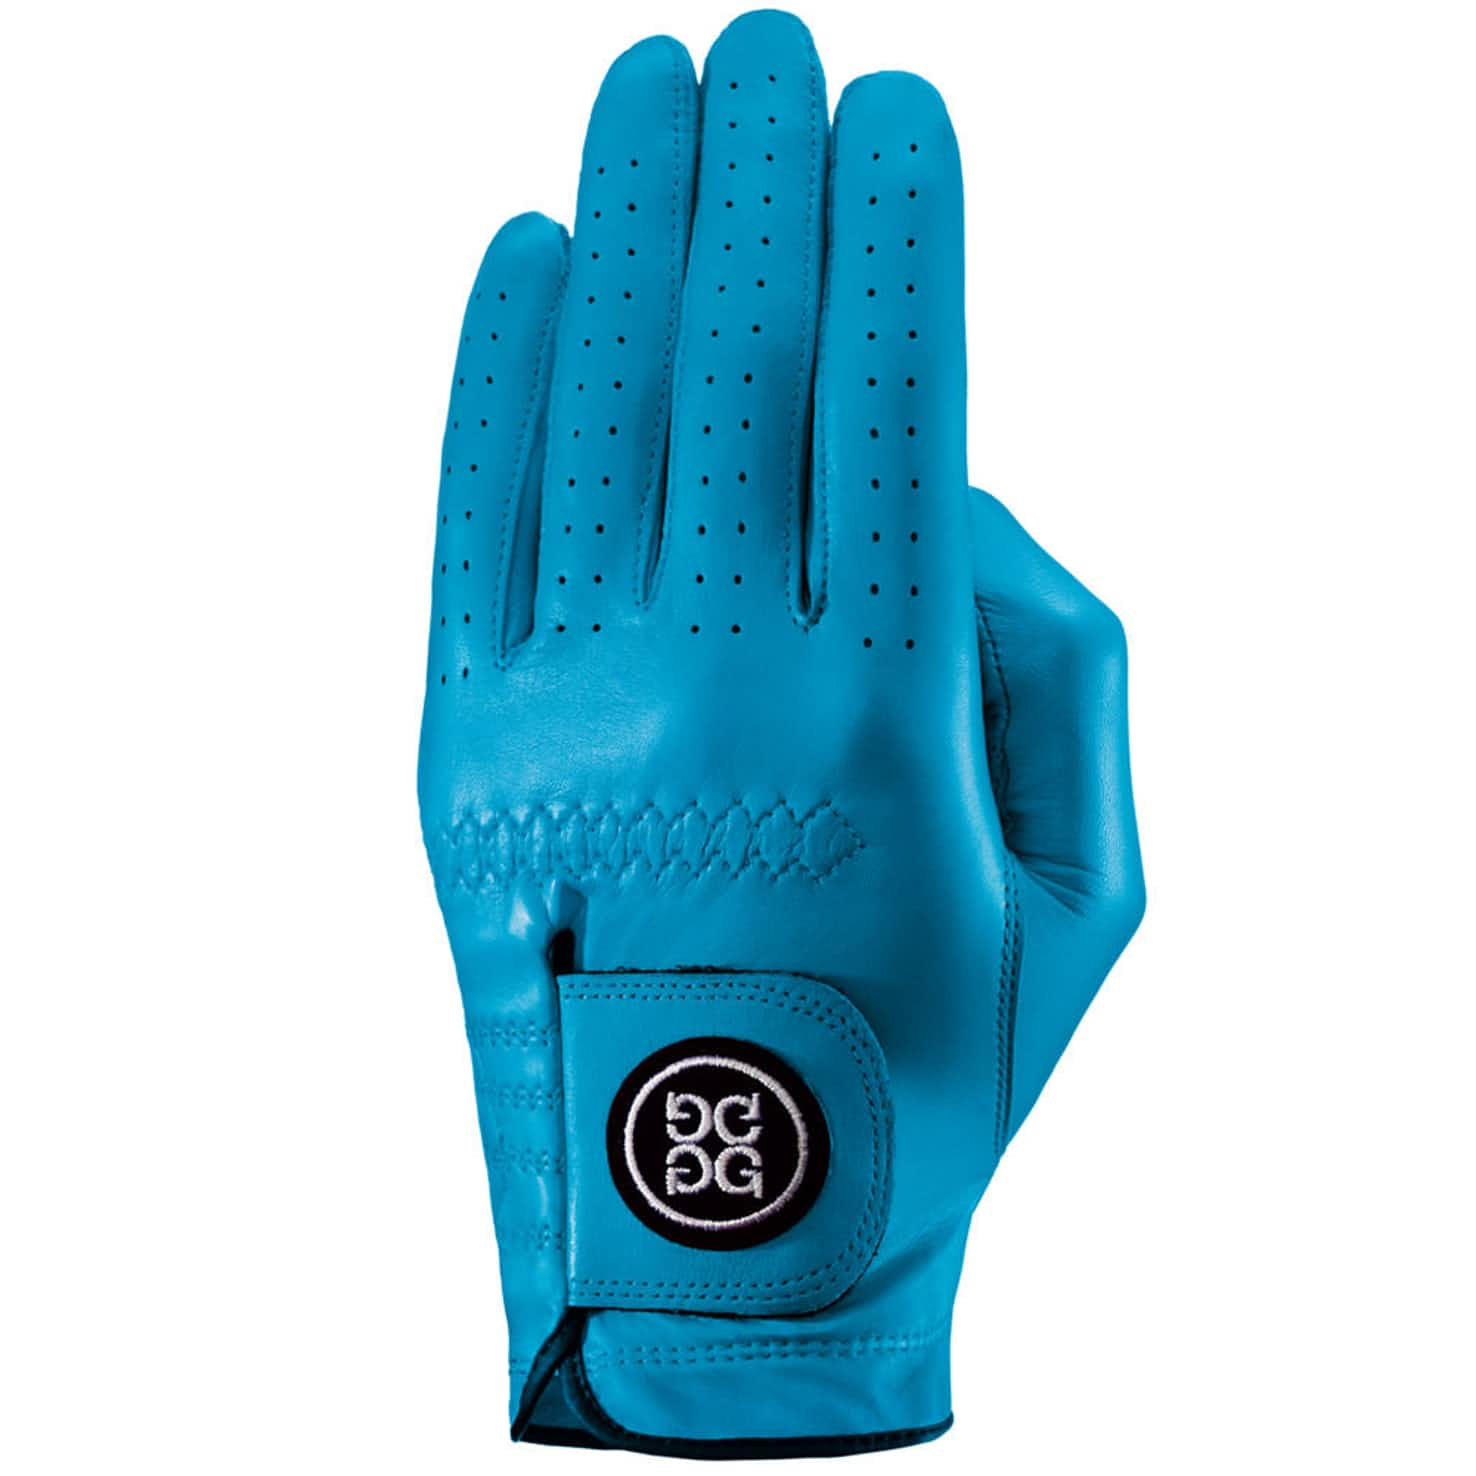 Mens Left Glove Pacific - 2020